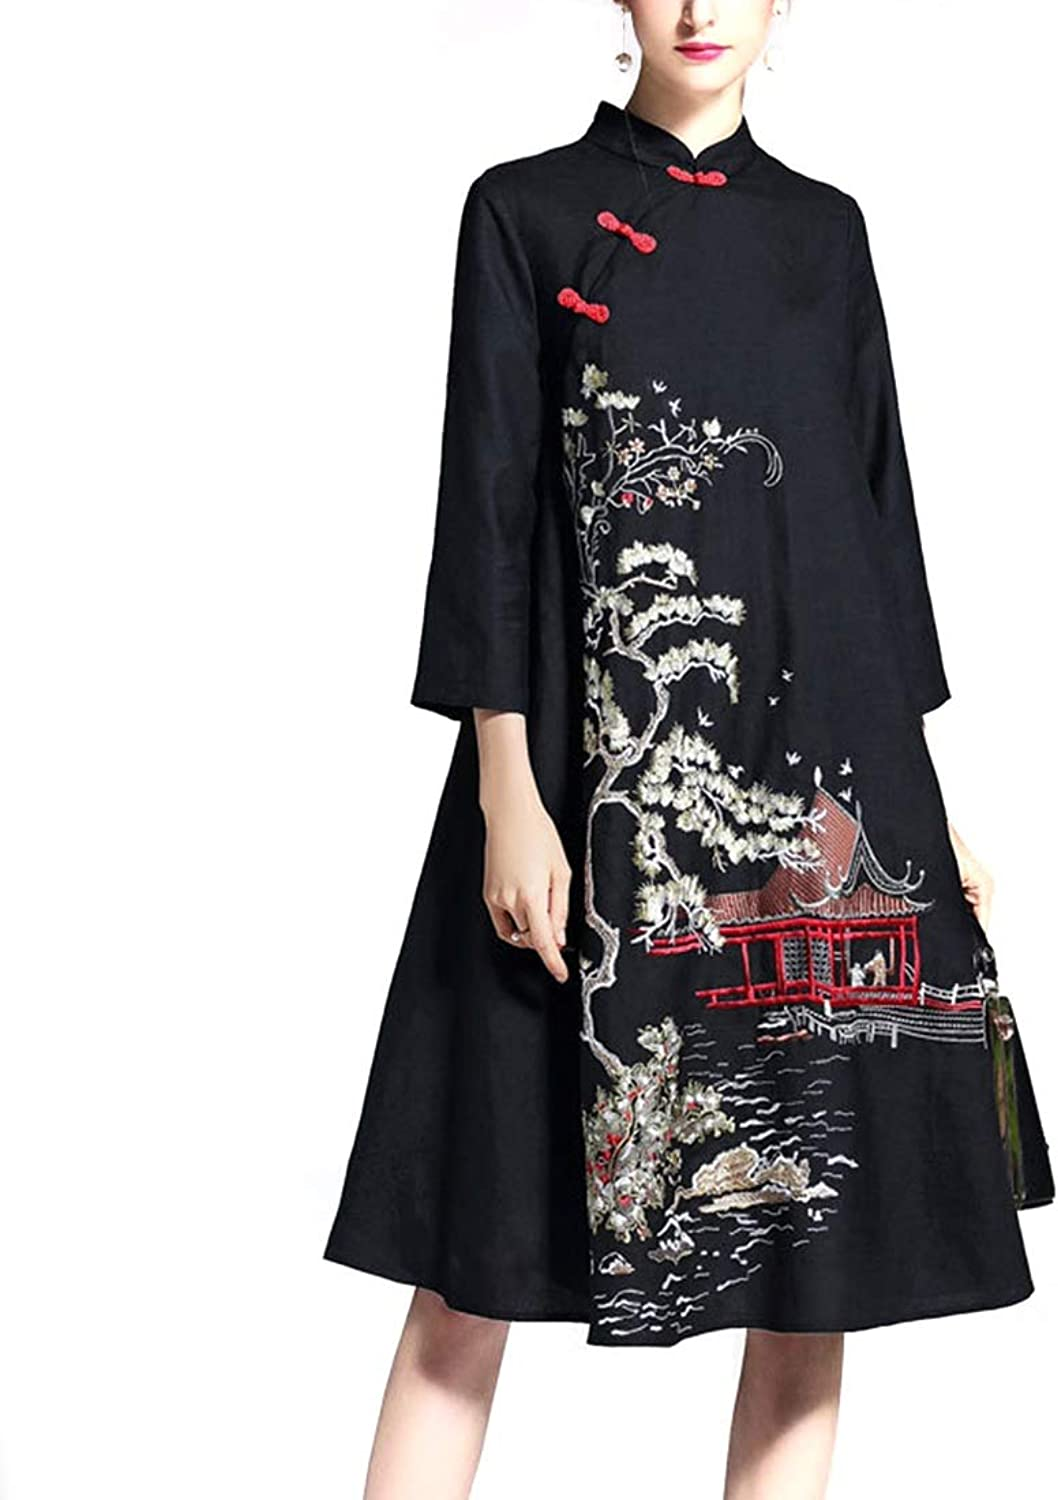 CEFULTY Women's Vintage Stand Collar Embroidered 3 4 Sleeve ALine Dress with Pockets (color   Black, Size   S)